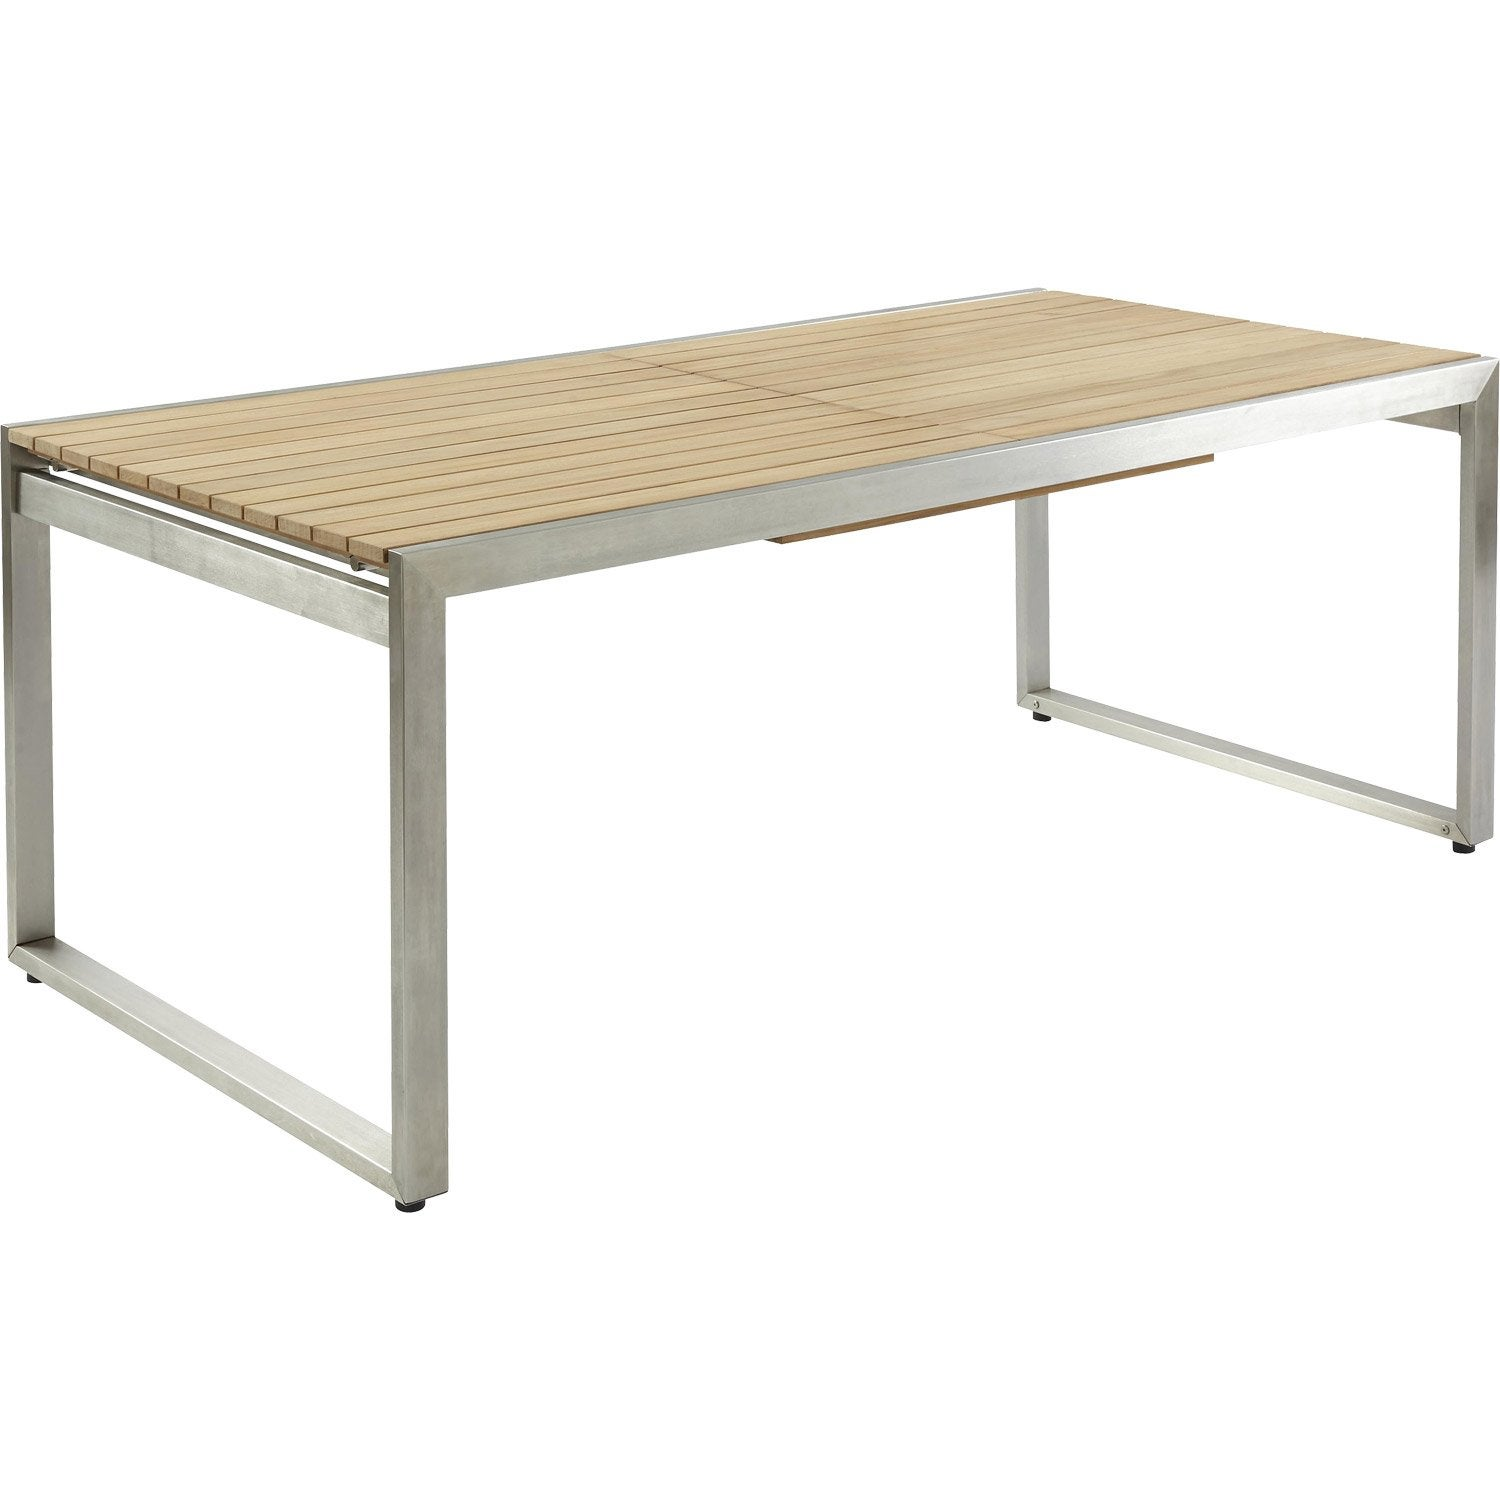 Table bois jardin leroy merlin for Banco jardin leroy merlin